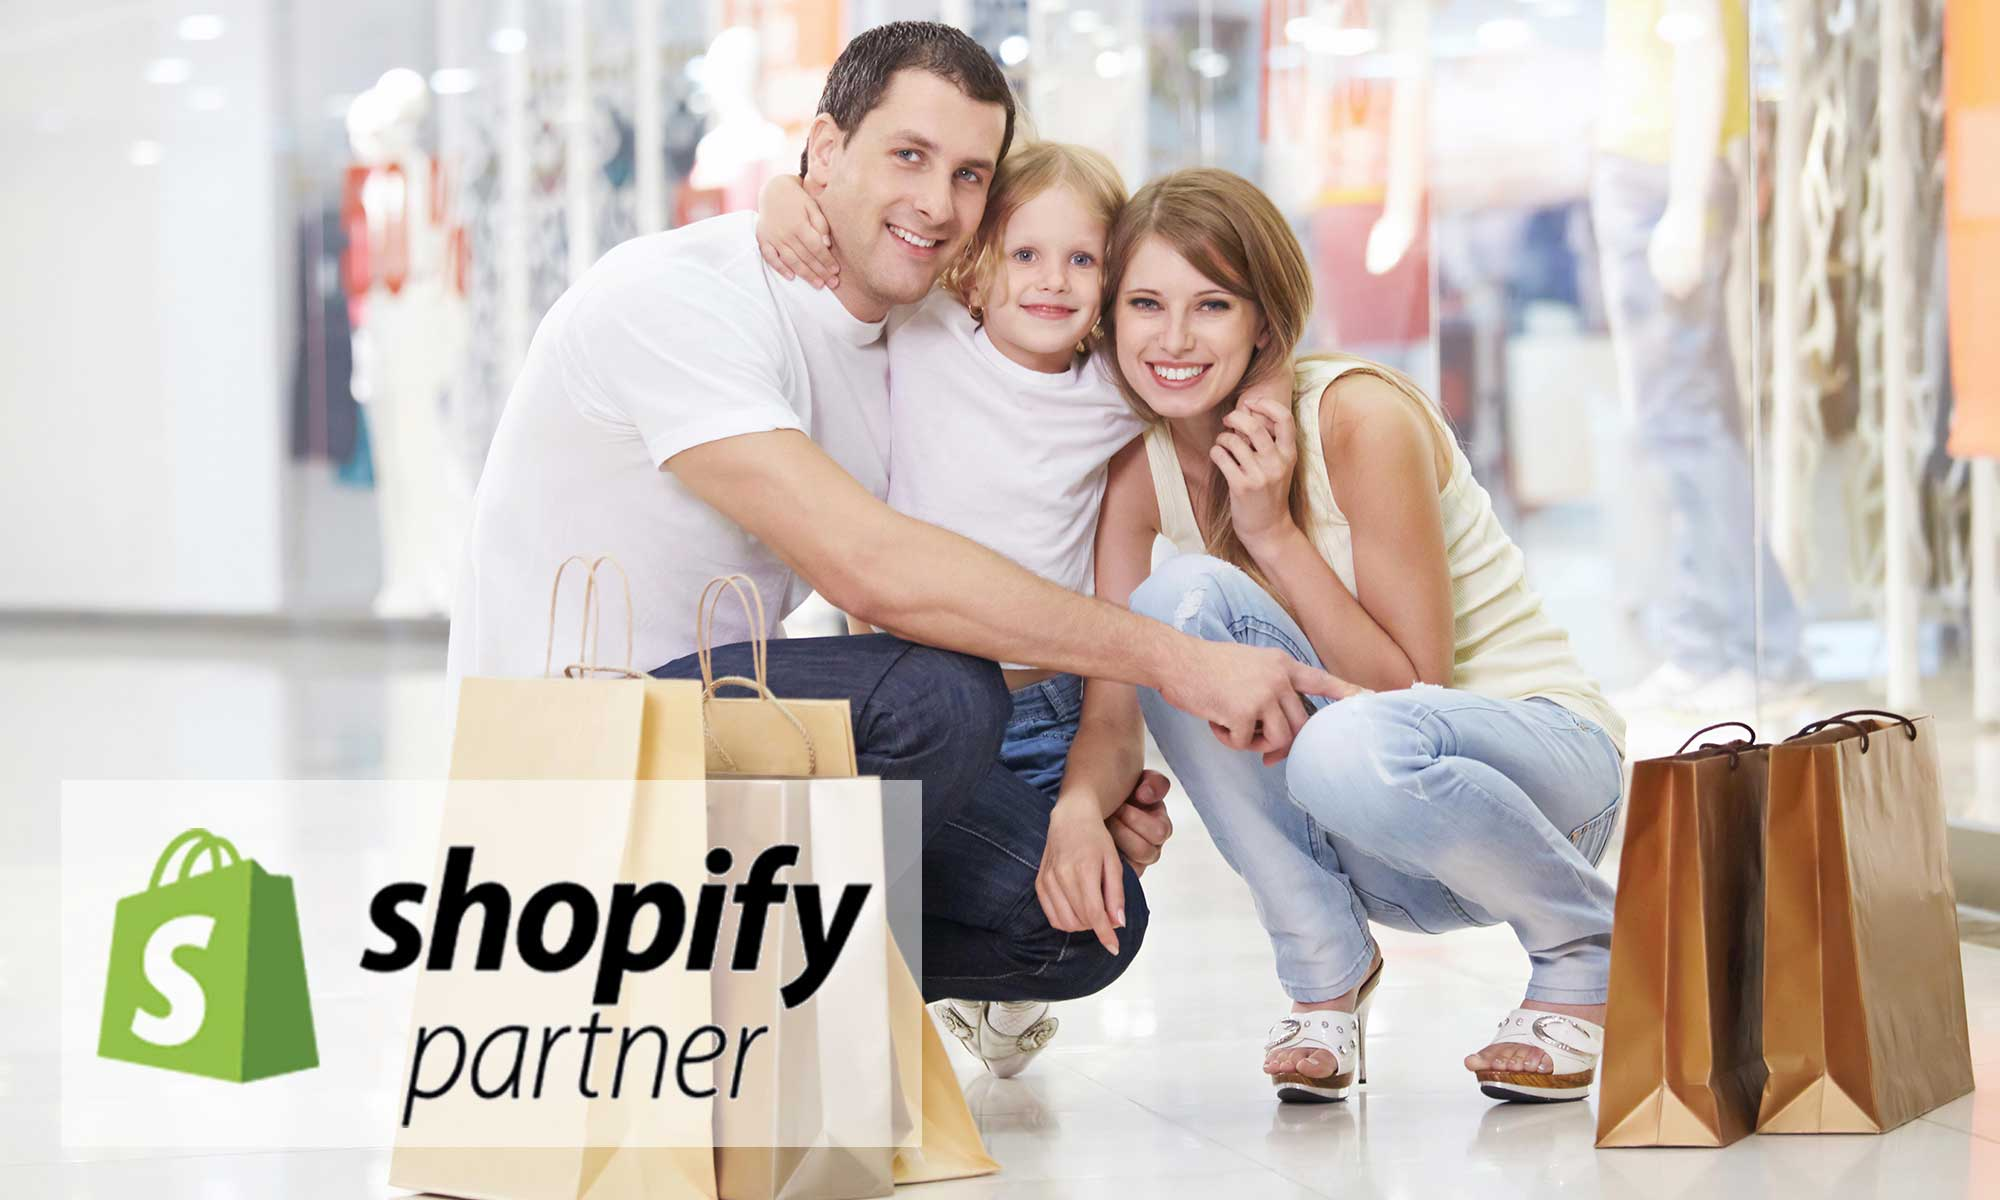 Shopping mall, Logo Shopify, certified Partner